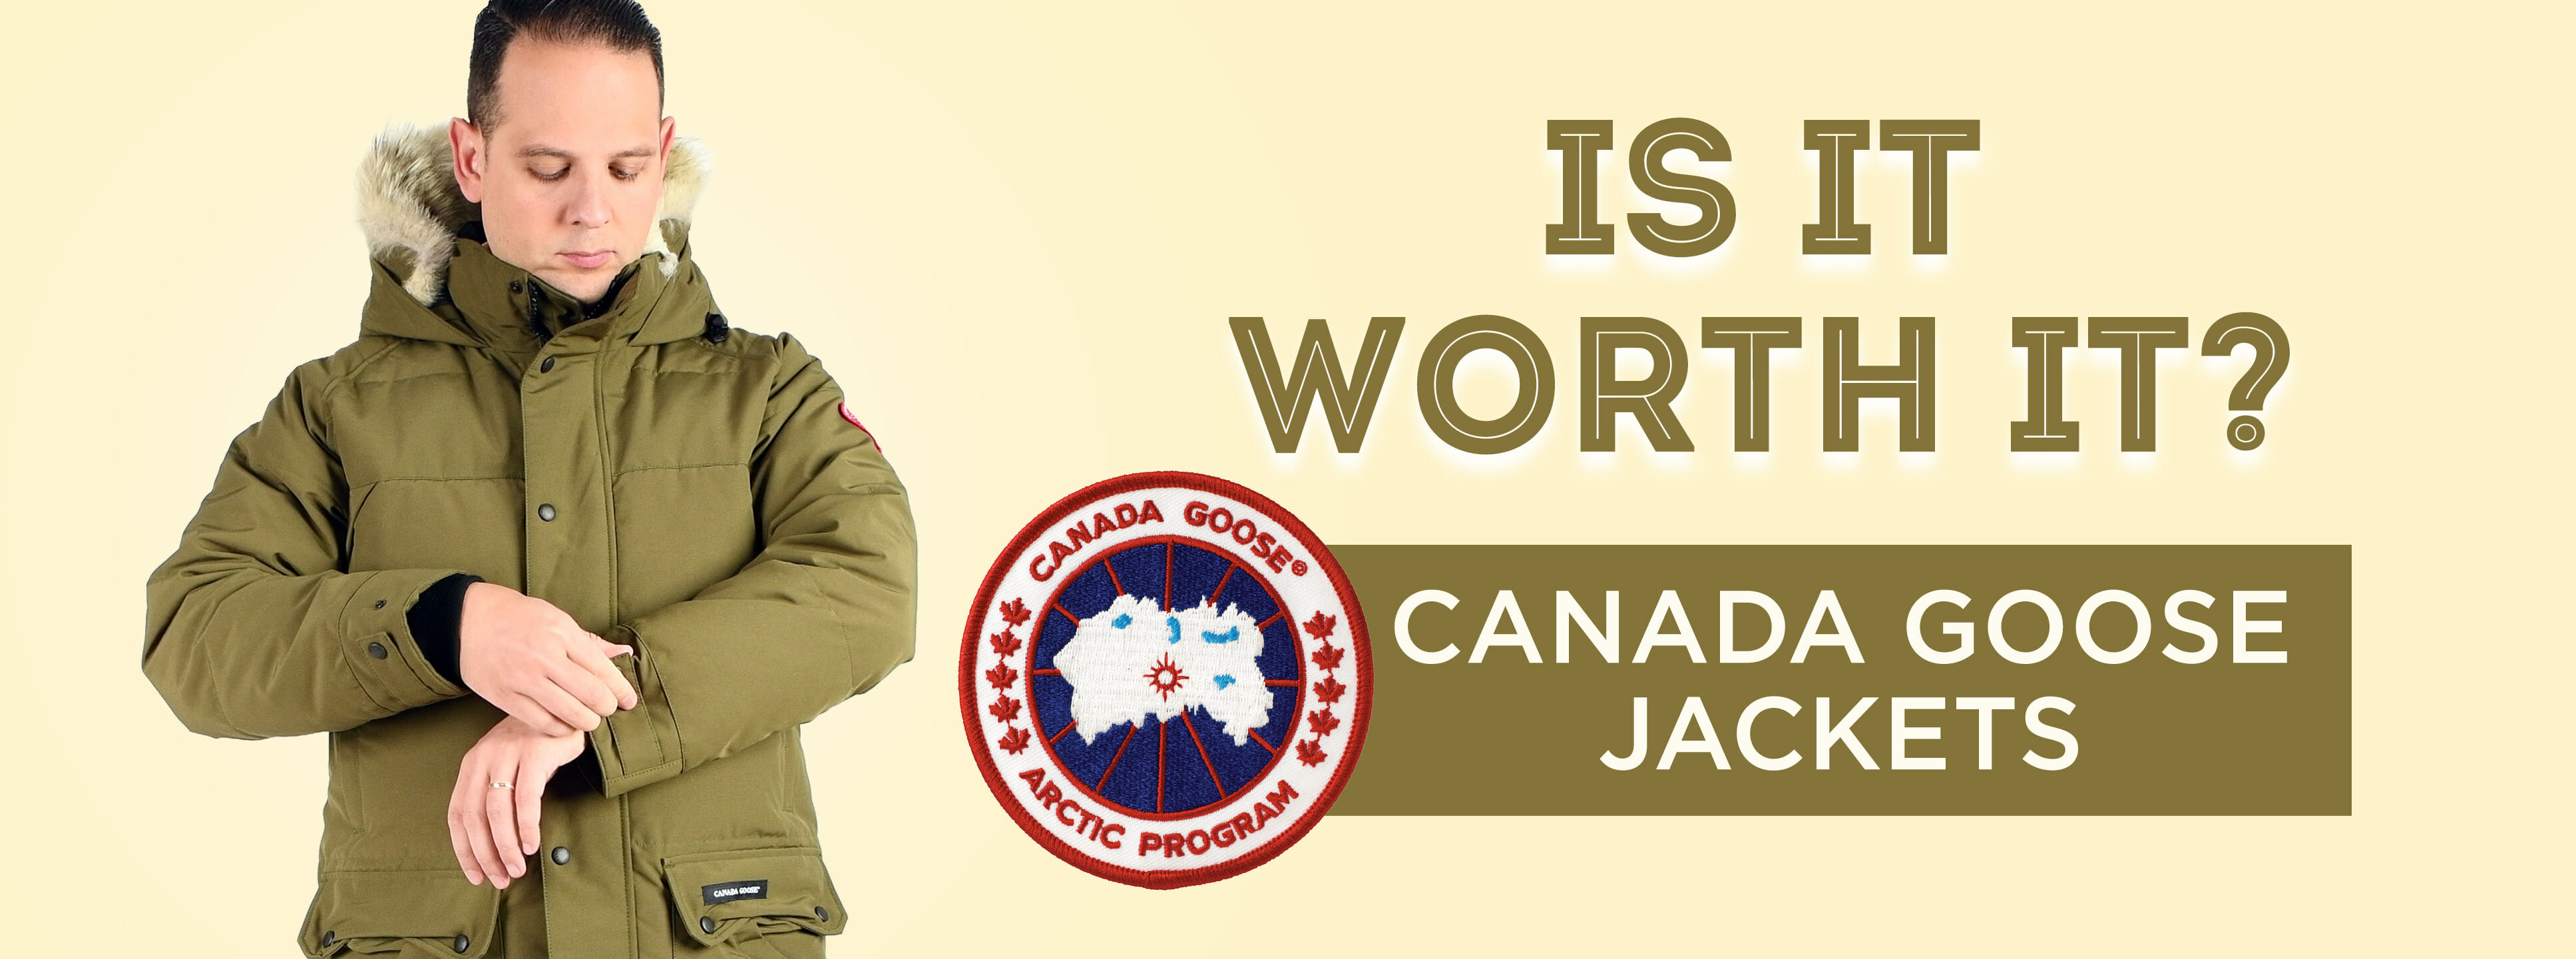 3b2f13abf43 Canada Goose Jackets - Is It Worth It? — Gentleman's Gazette